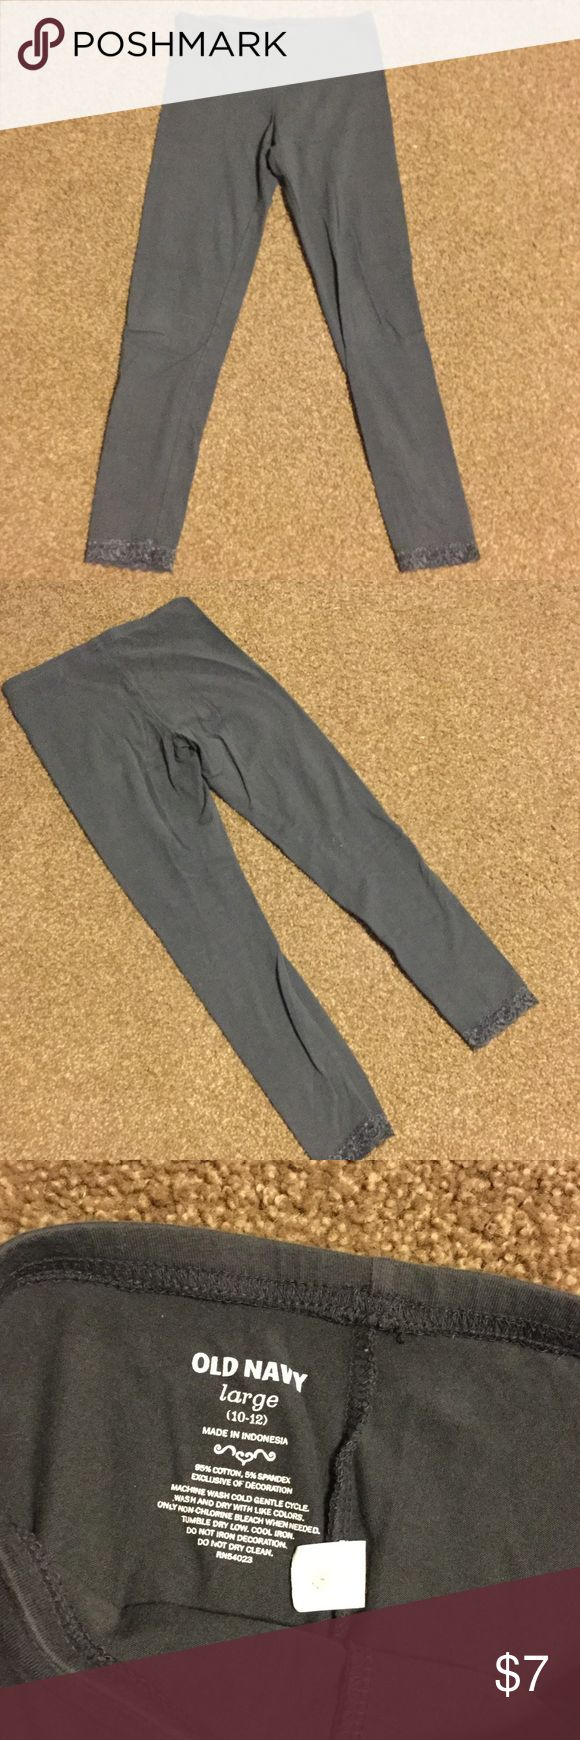 Old Navy Lace Trim Charcoal Leggings EUC. Comfortable. Only worn a few times. Lace trim on bottom. No tears, stains, etc. Old Navy Bottoms Leggings